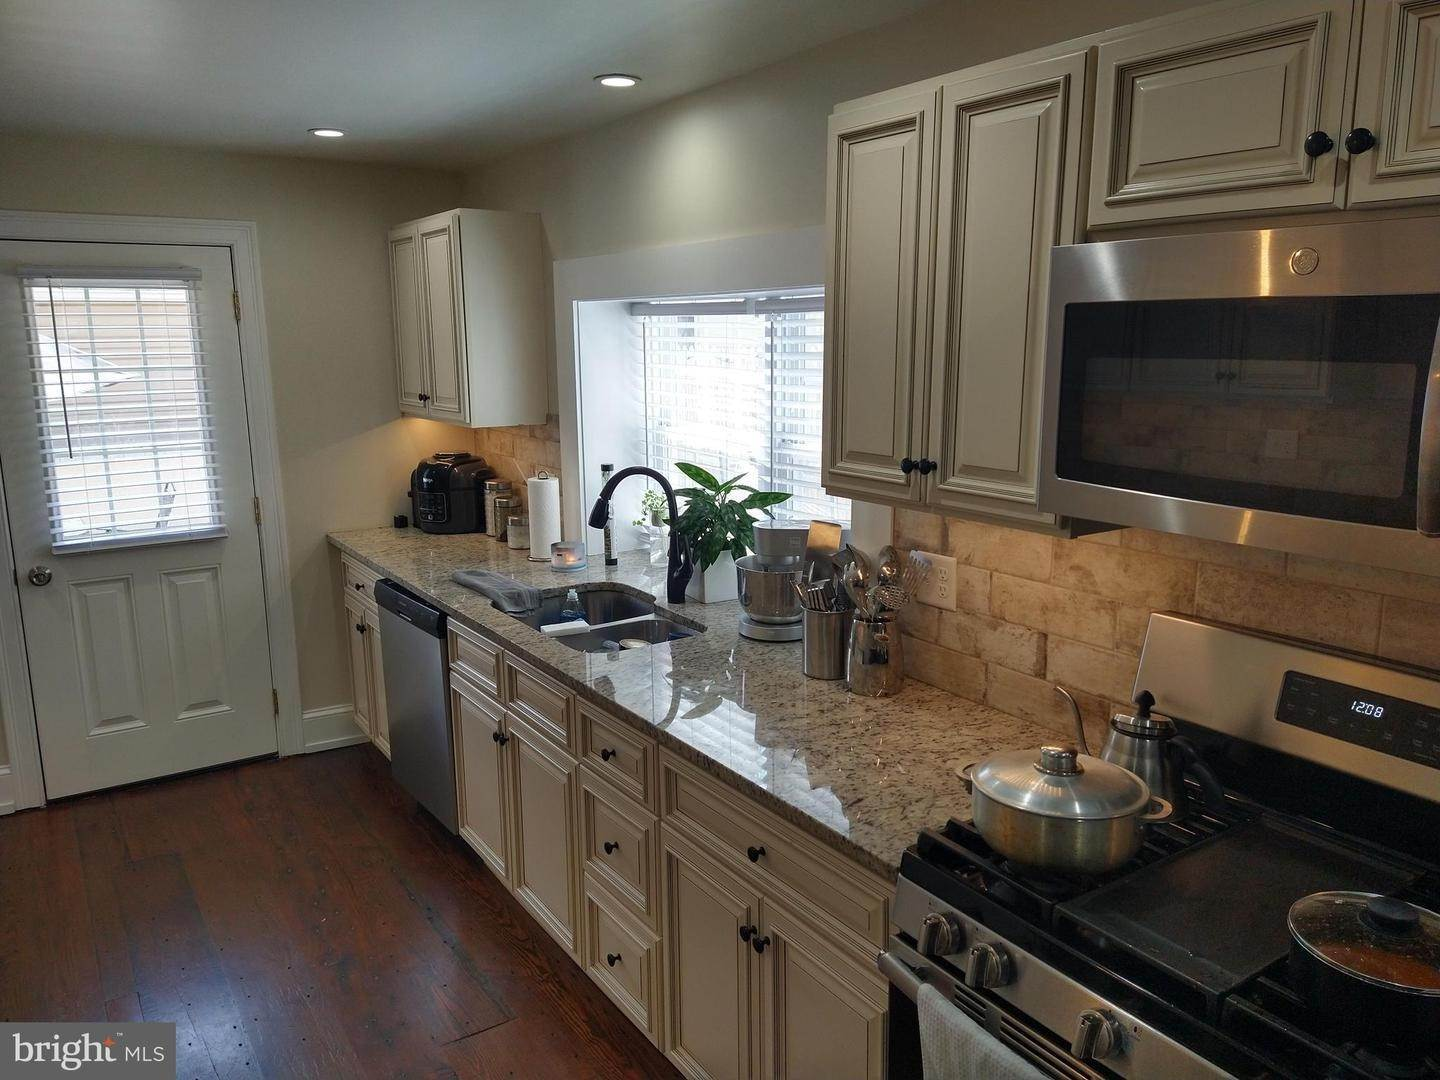 2. Residential for Sale at 219 N LIME Street Lancaster, Pennsylvania 17602 United States